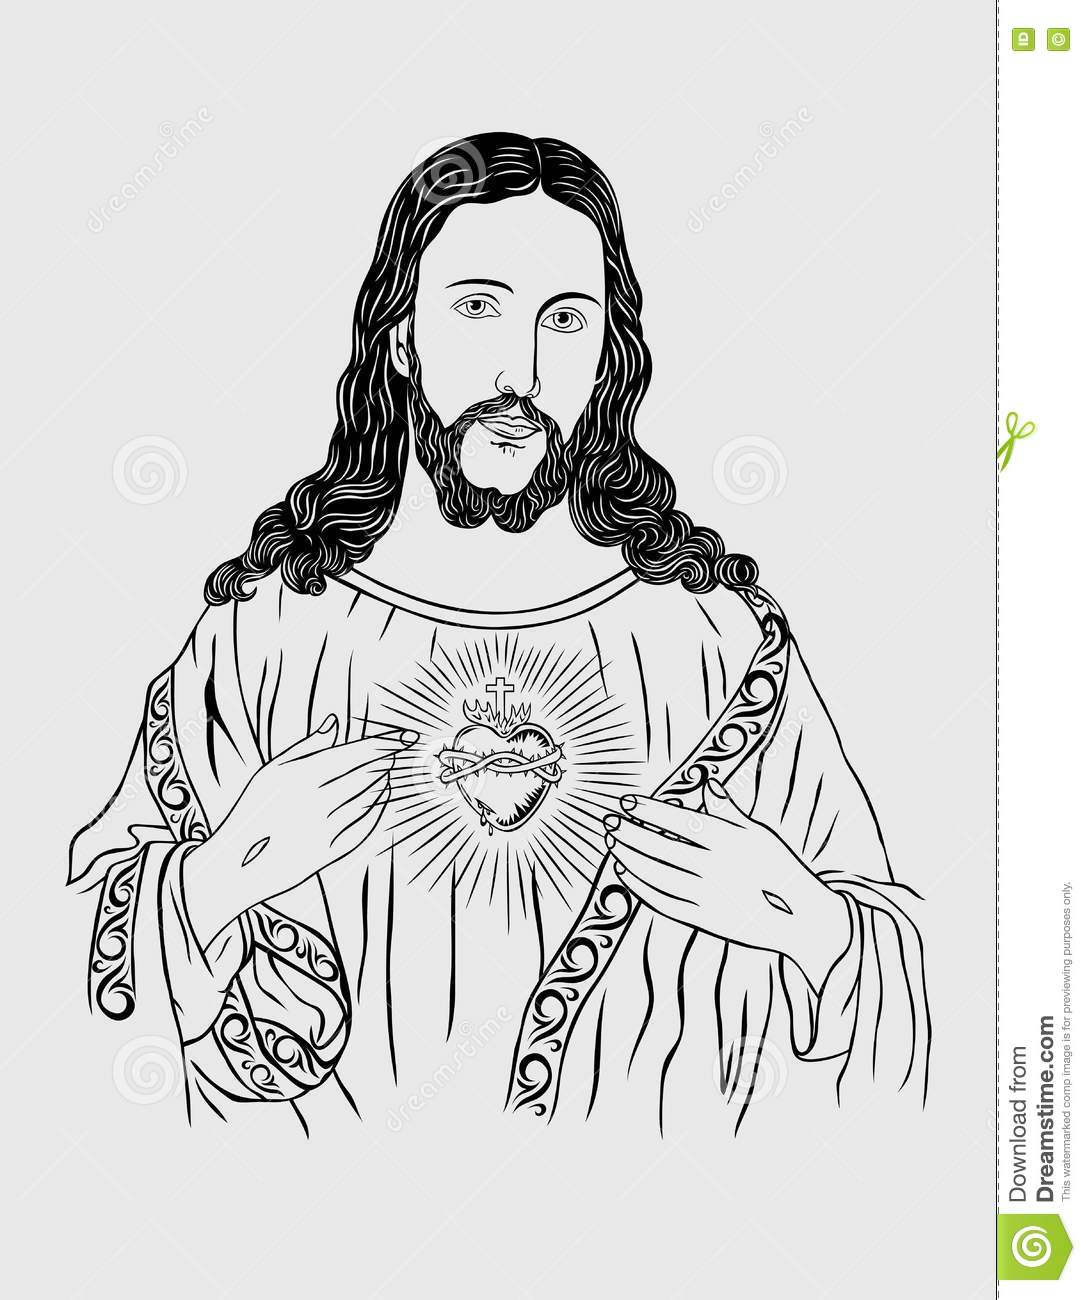 Sacred heart of jesus sketch drawing illustration art vector design